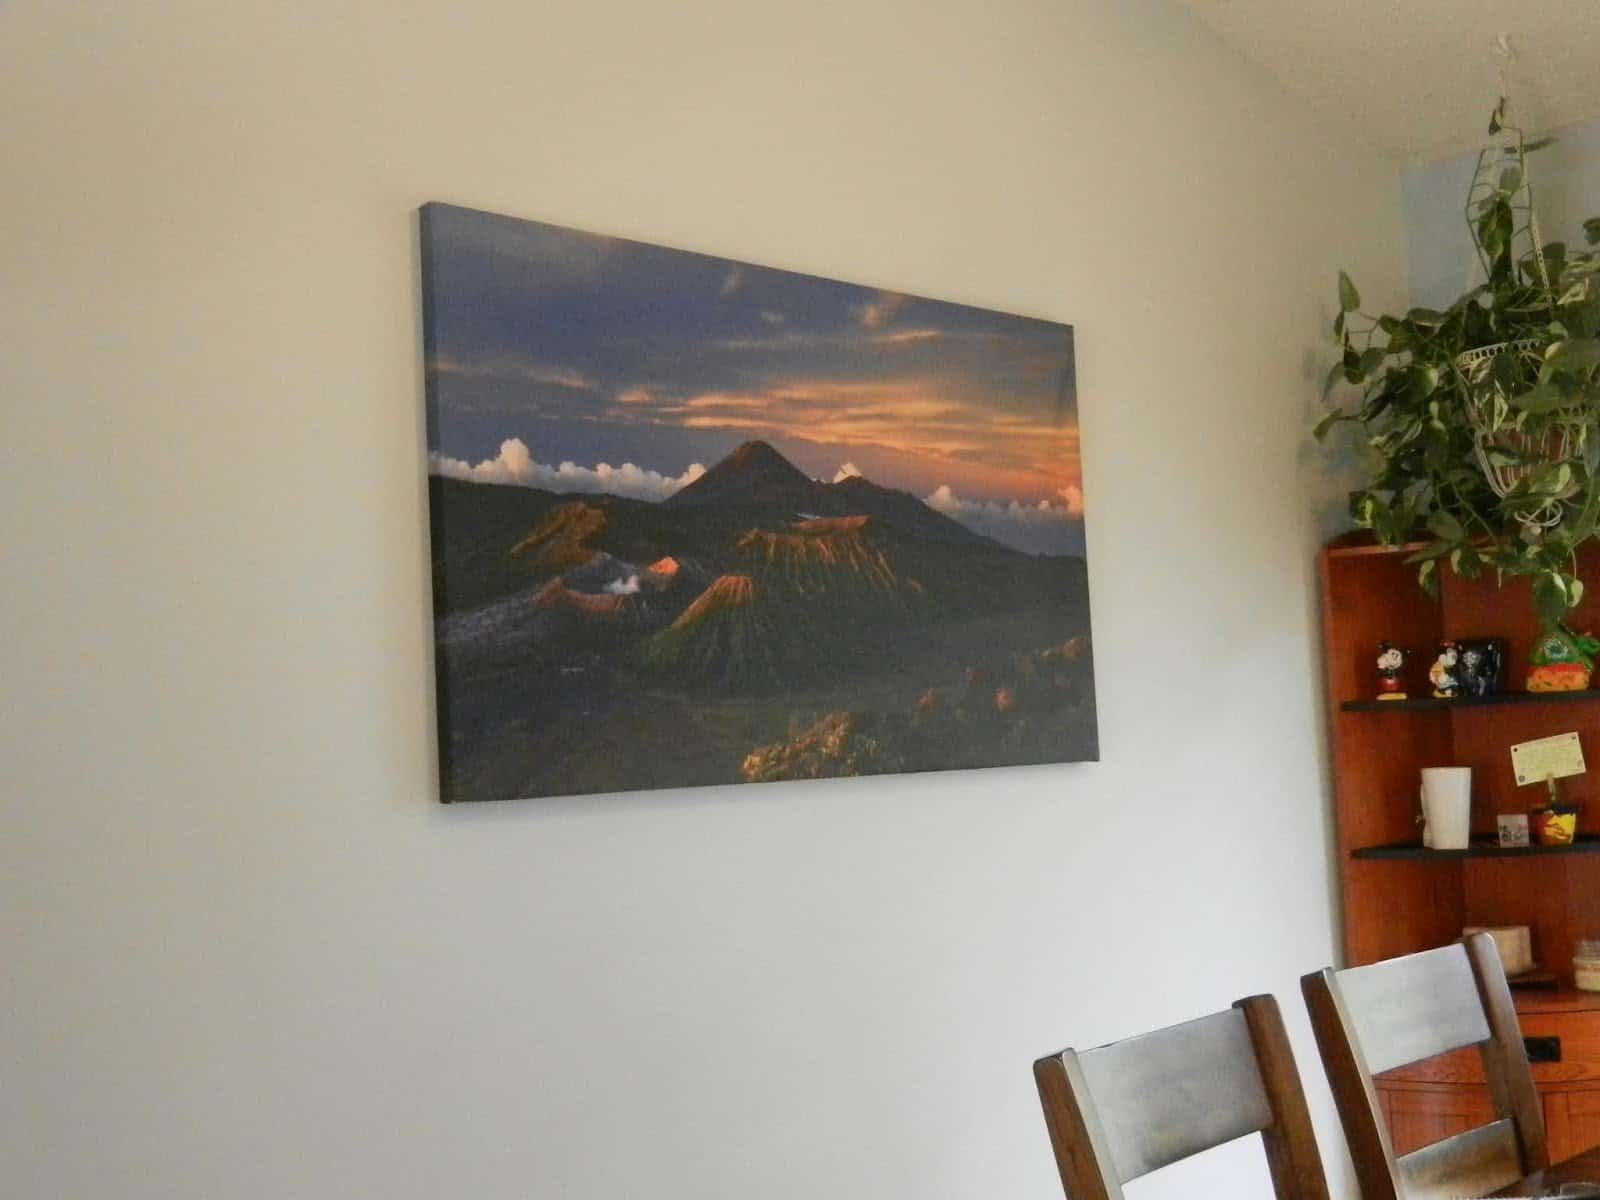 re-decorate with a new canvas from Photowall